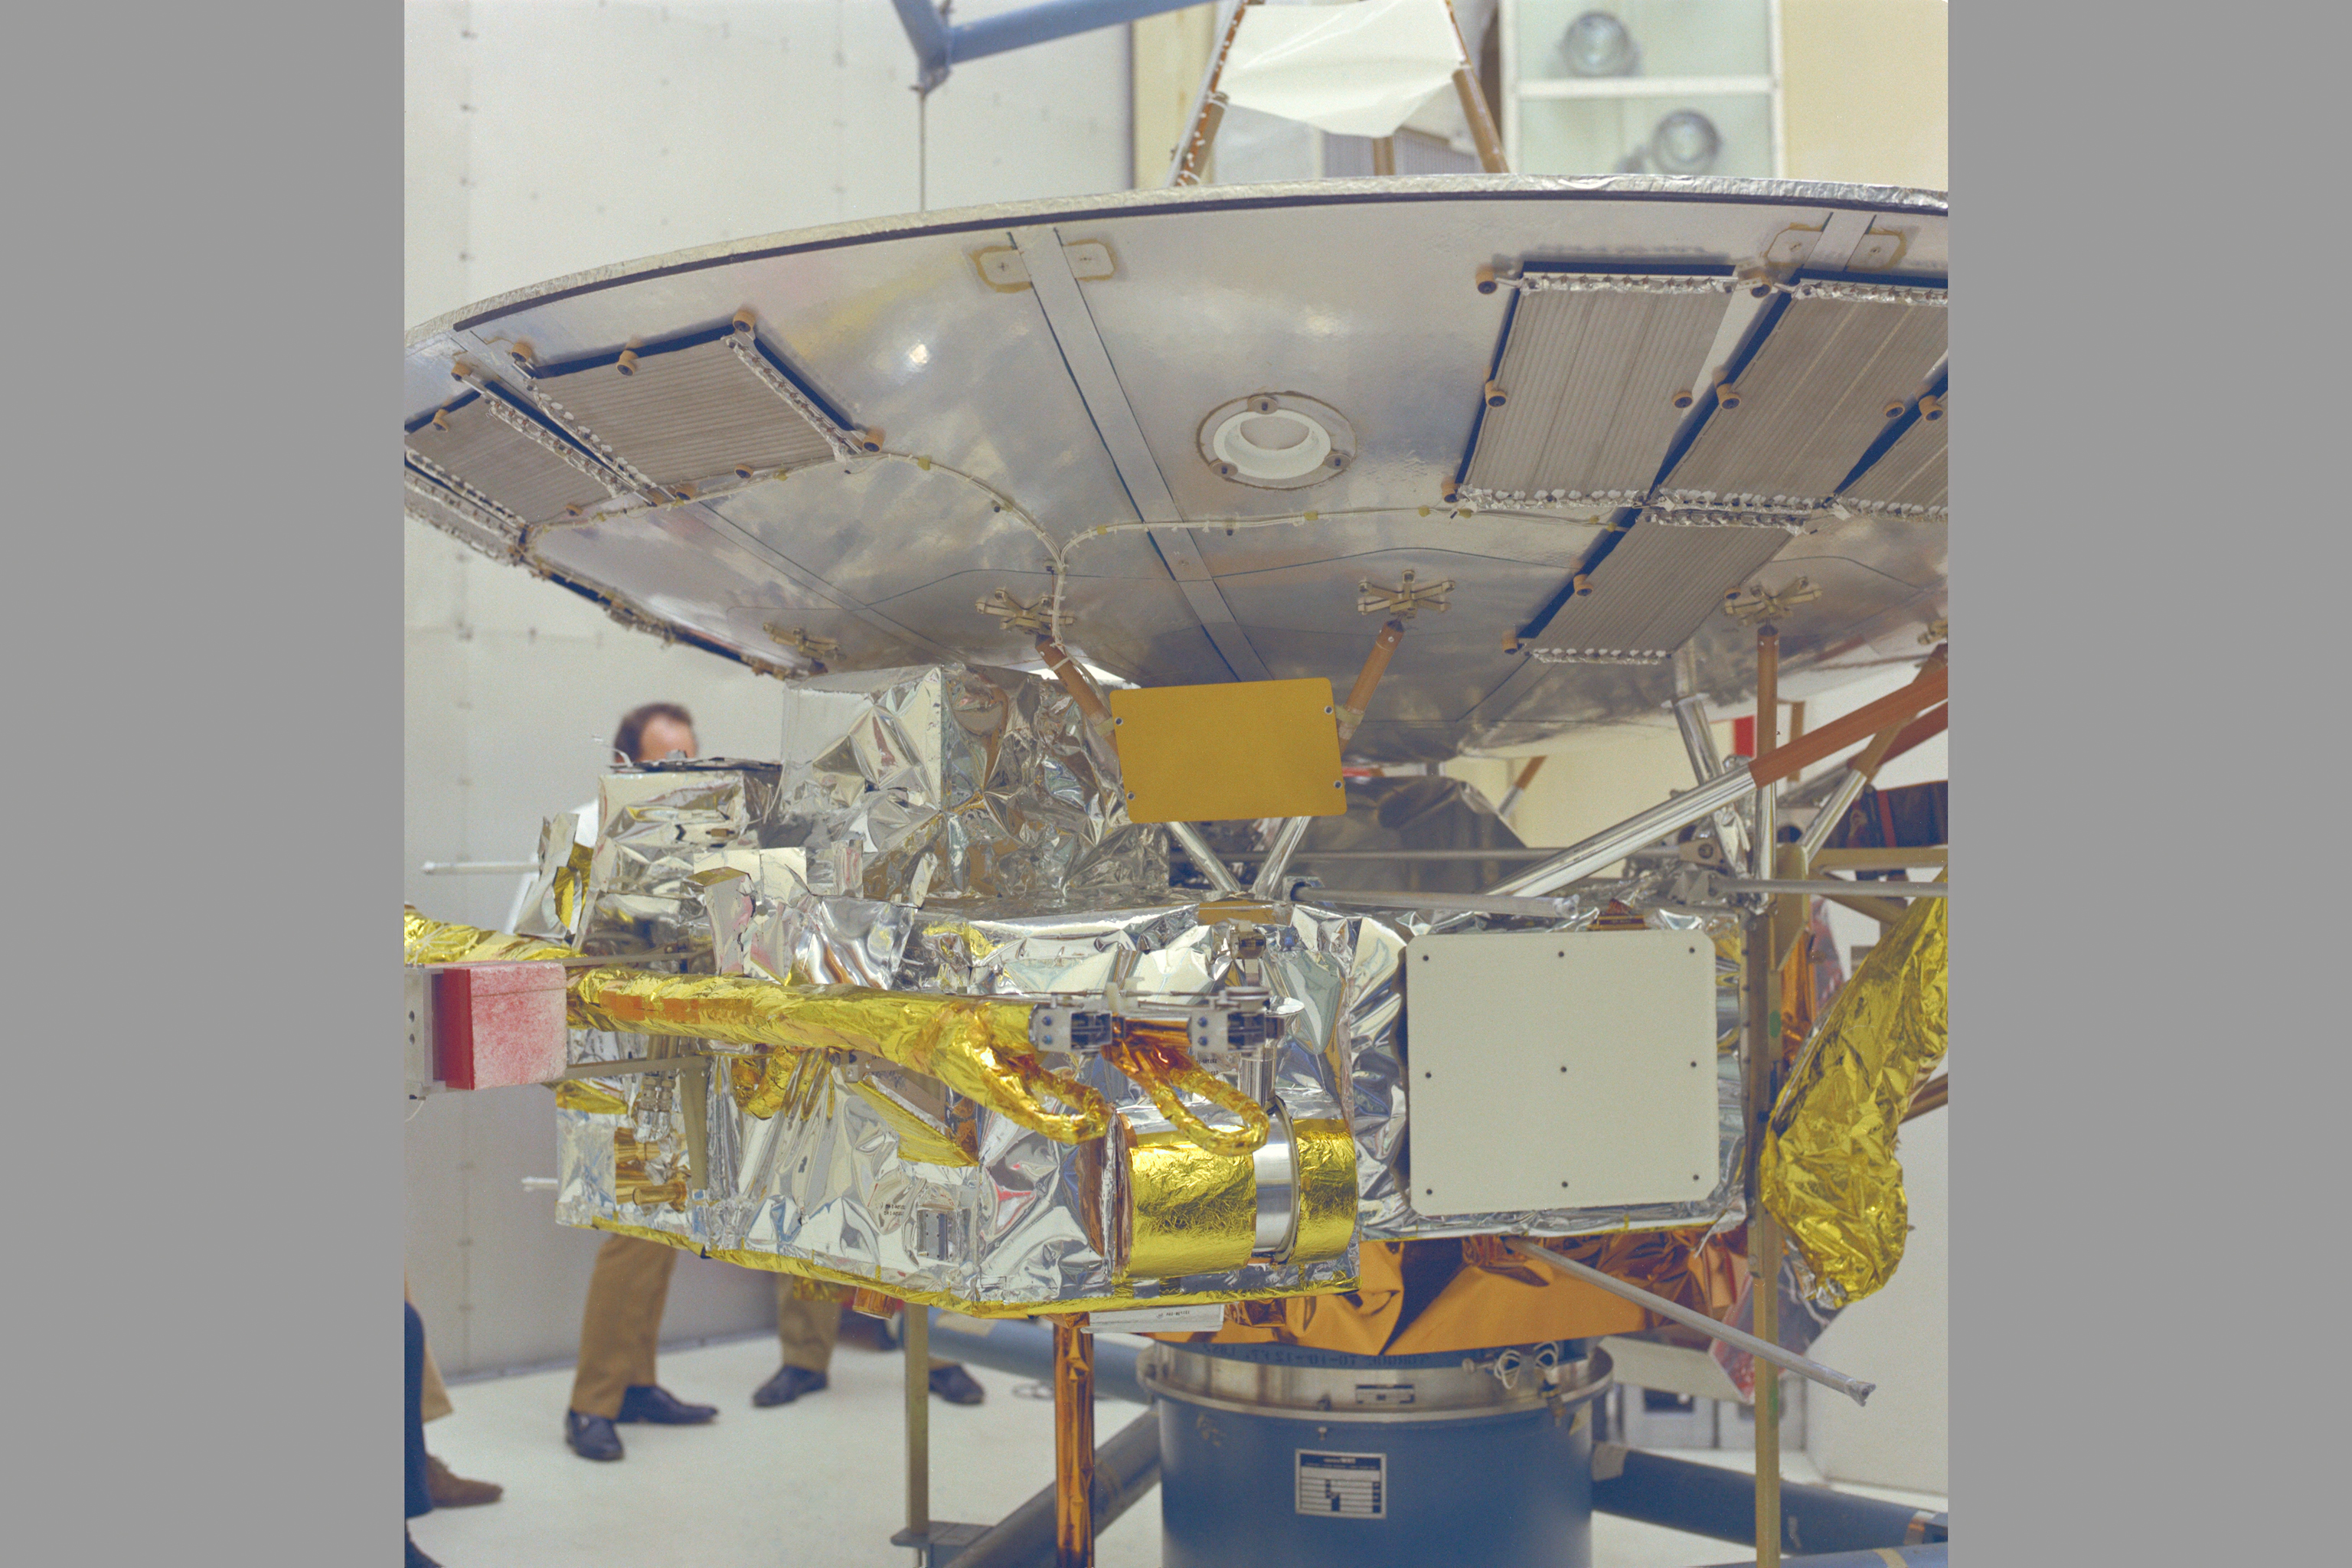 space probe pioneer 10 plaque - photo #36